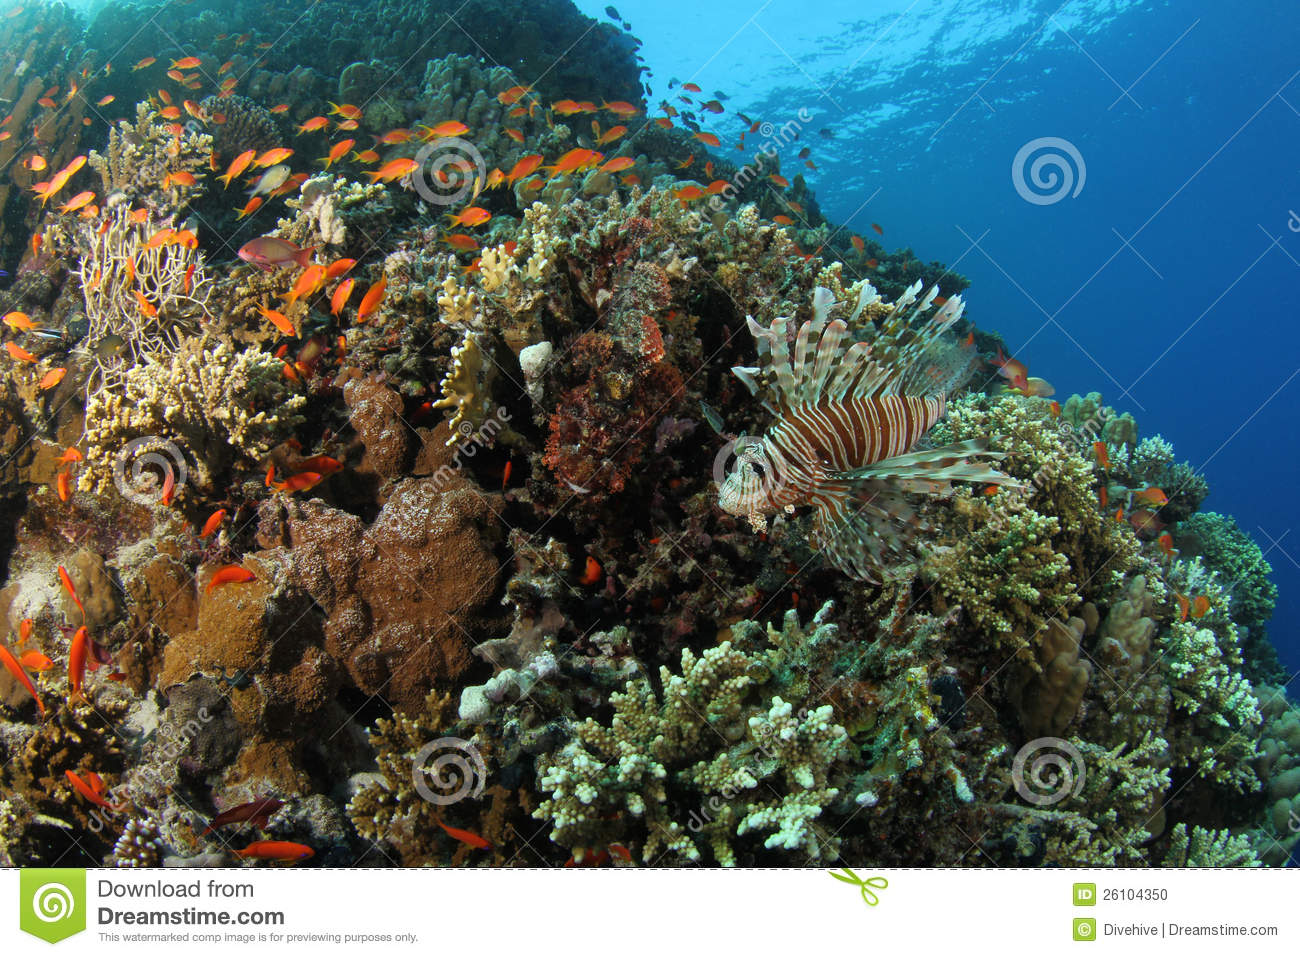 Lionfish on a tropical coral reef in the Red Sea